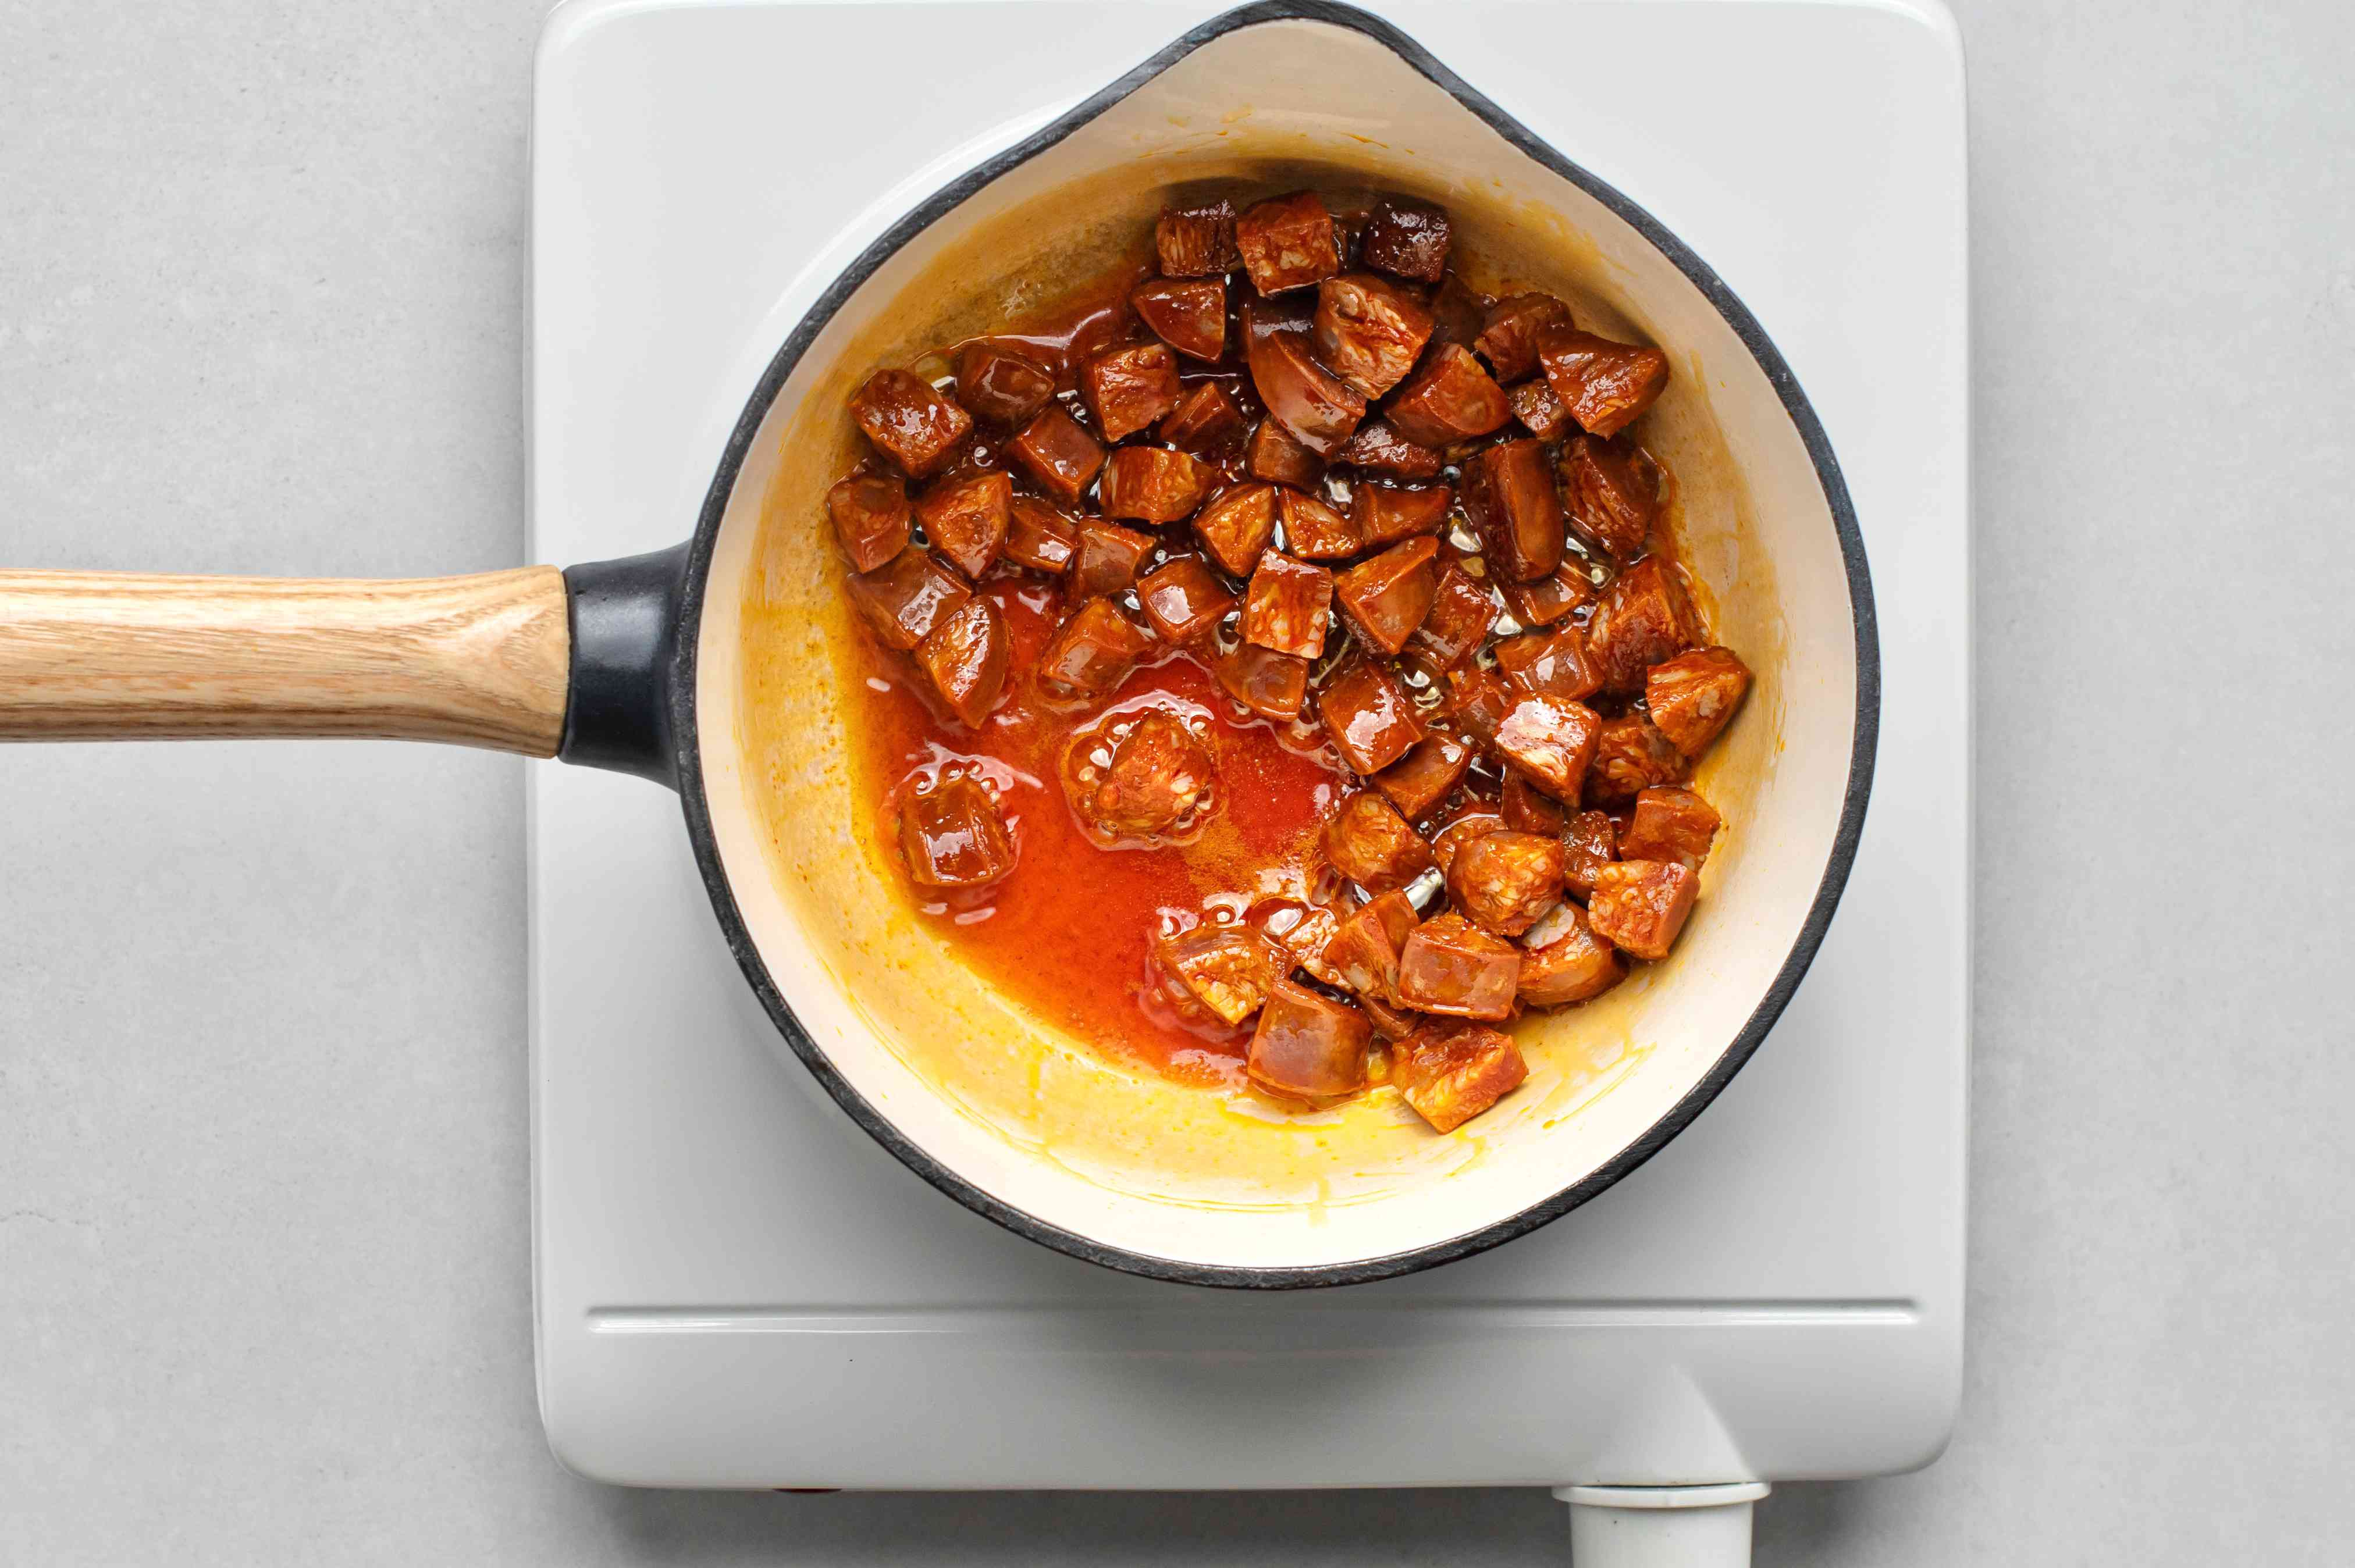 Cook the chorizo until some of the fat has rendered